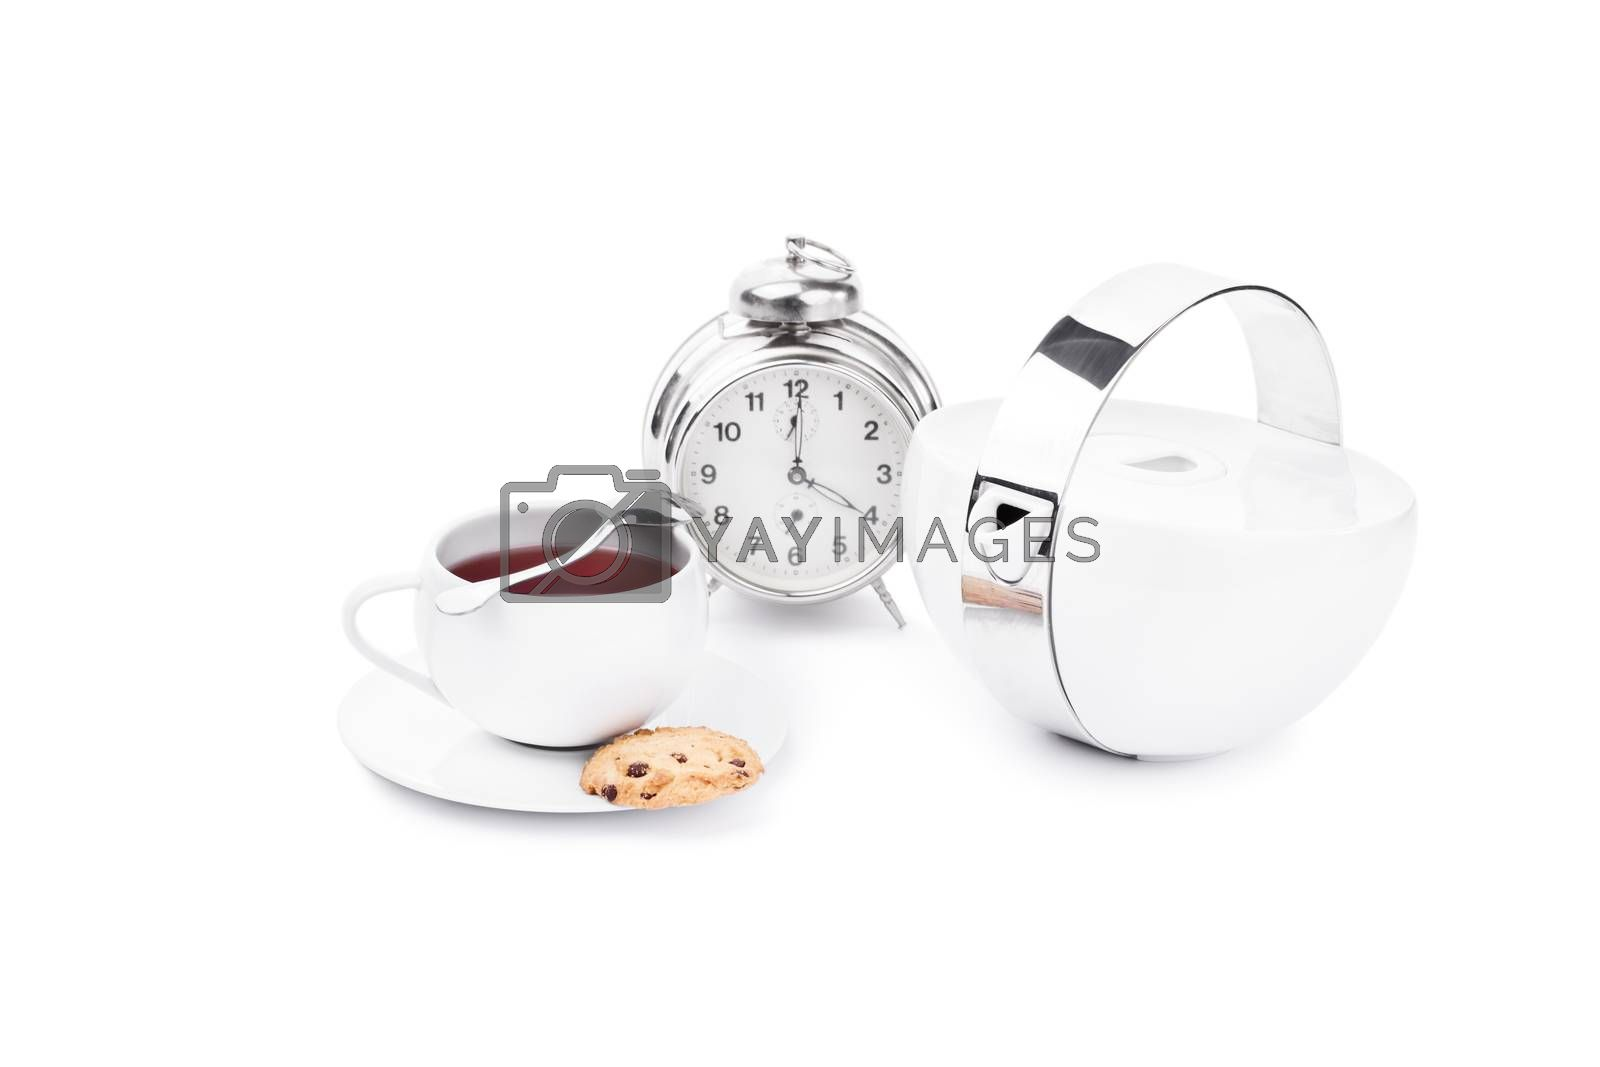 Cup of tea with chocolate cookies and an alarm clock,isolated on white background.